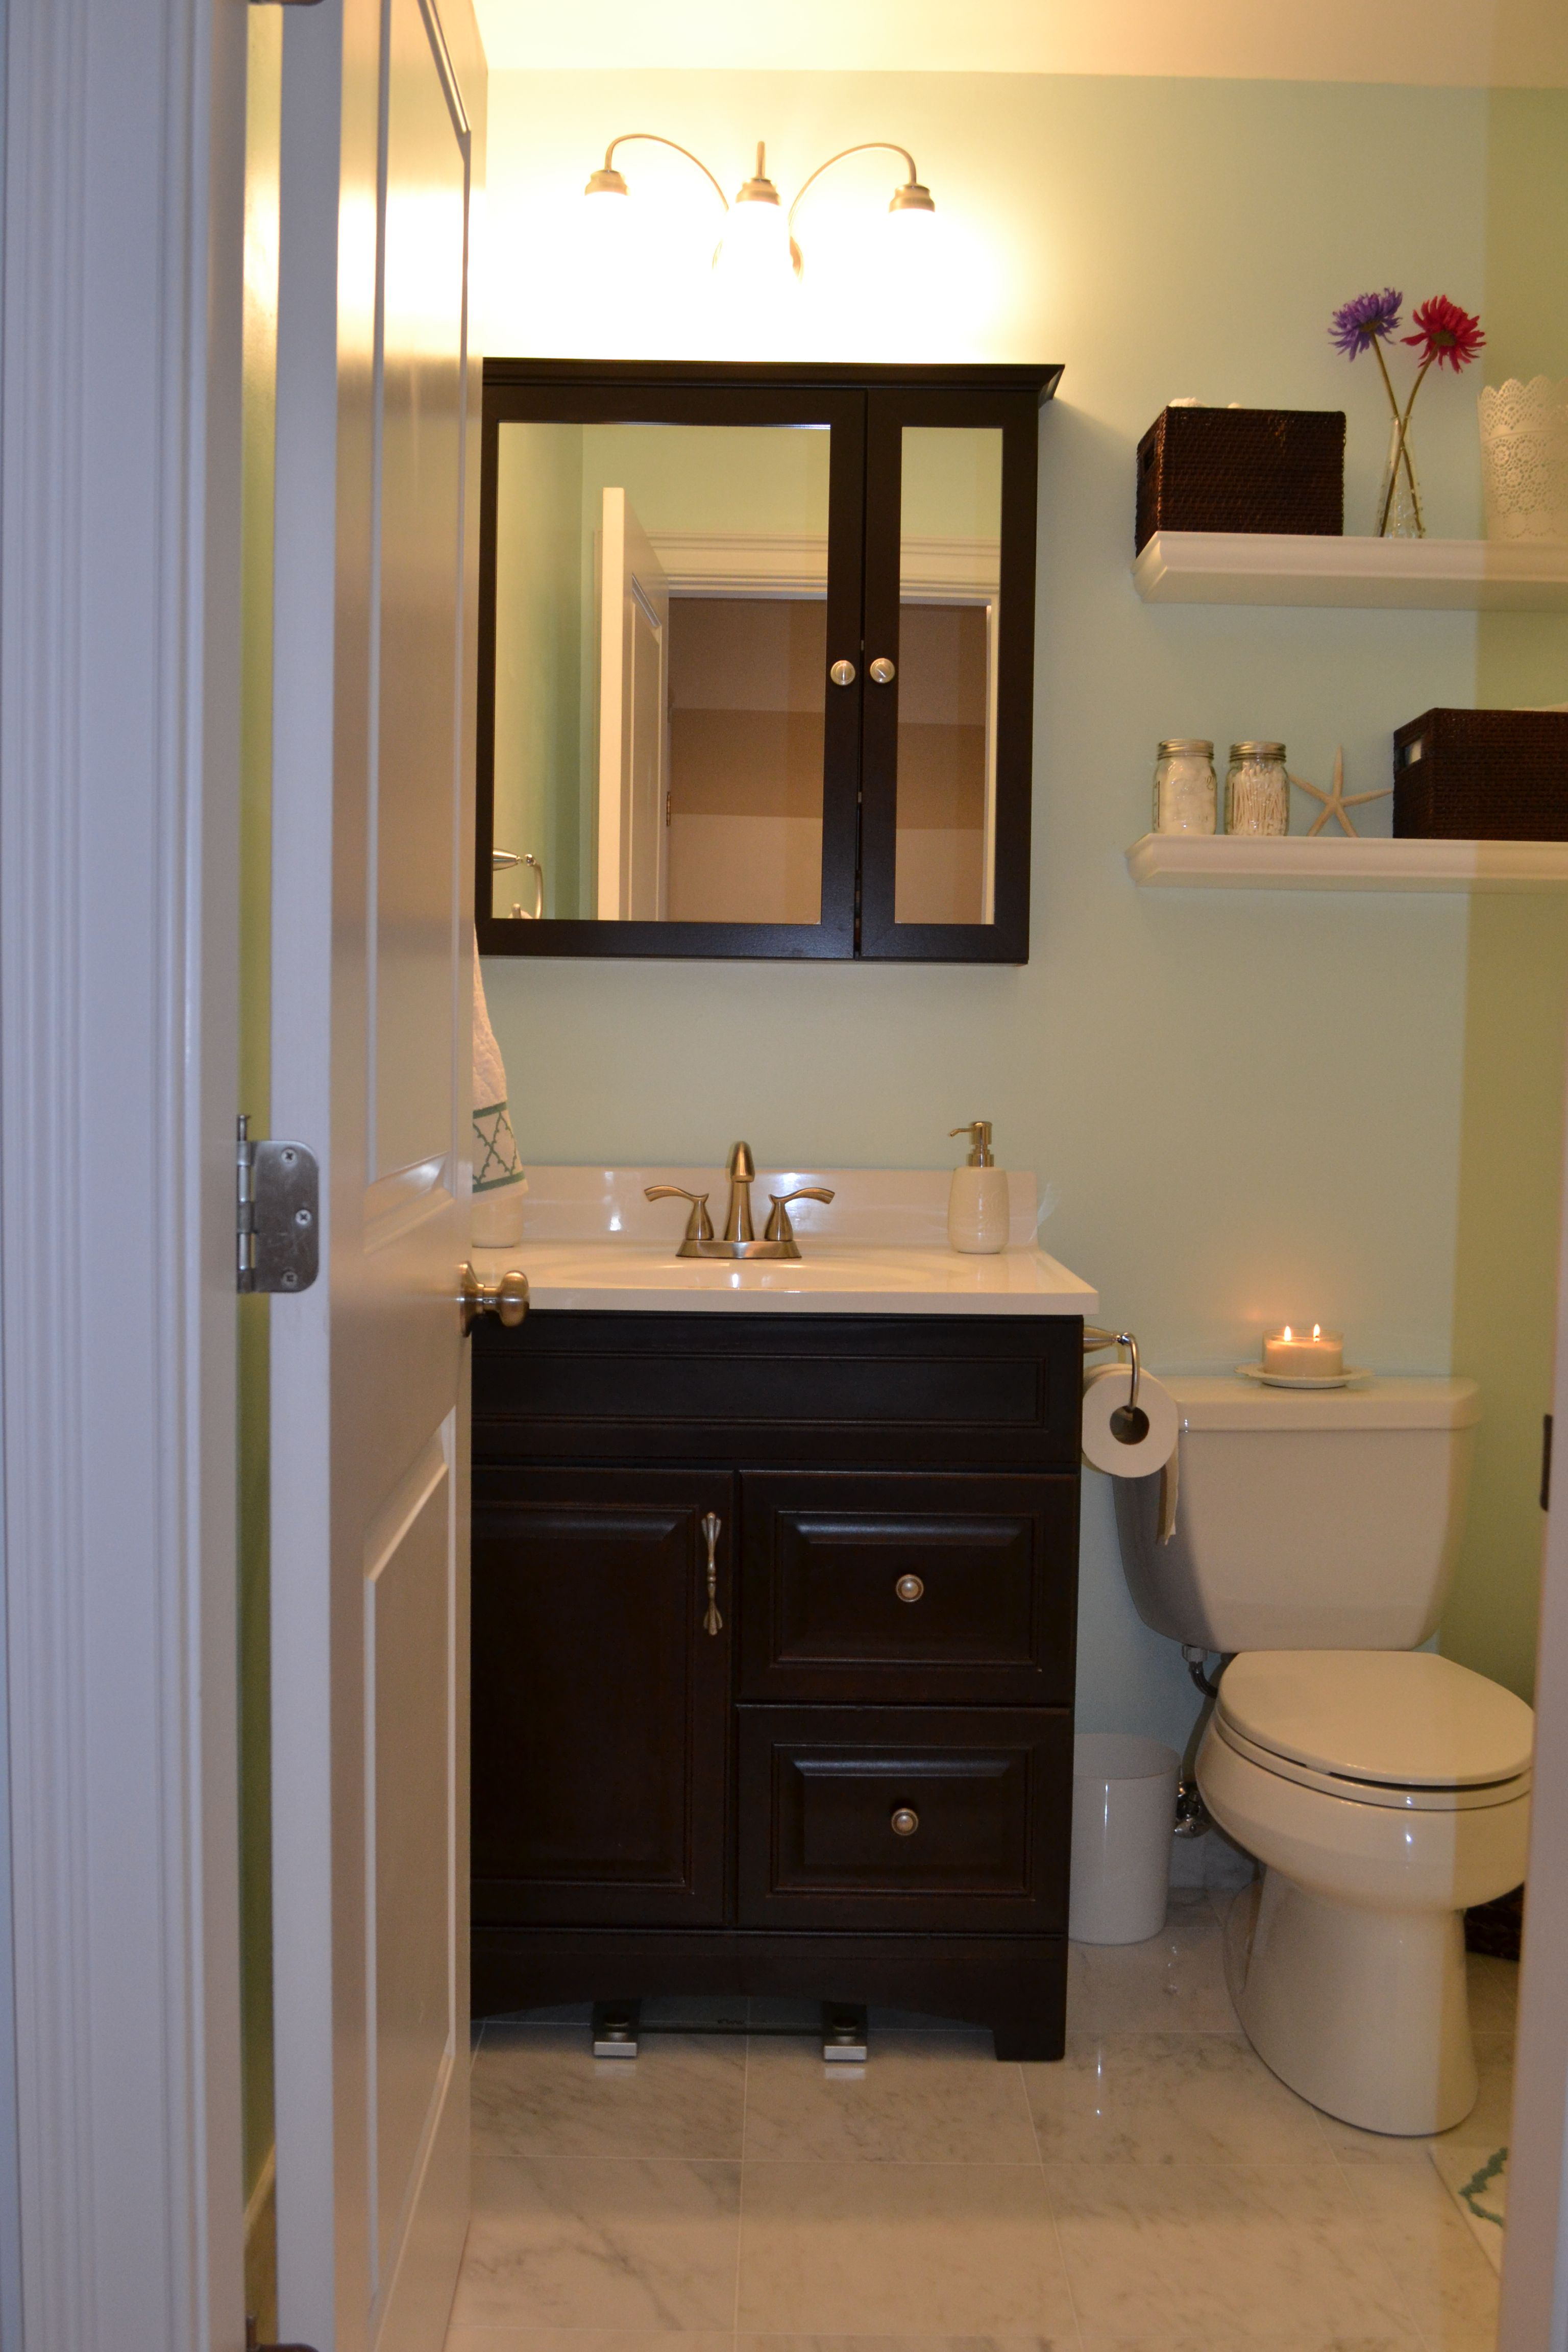 Bathroom interior design in bangladesh doing remodel small bathroom interior can make the nuance of the